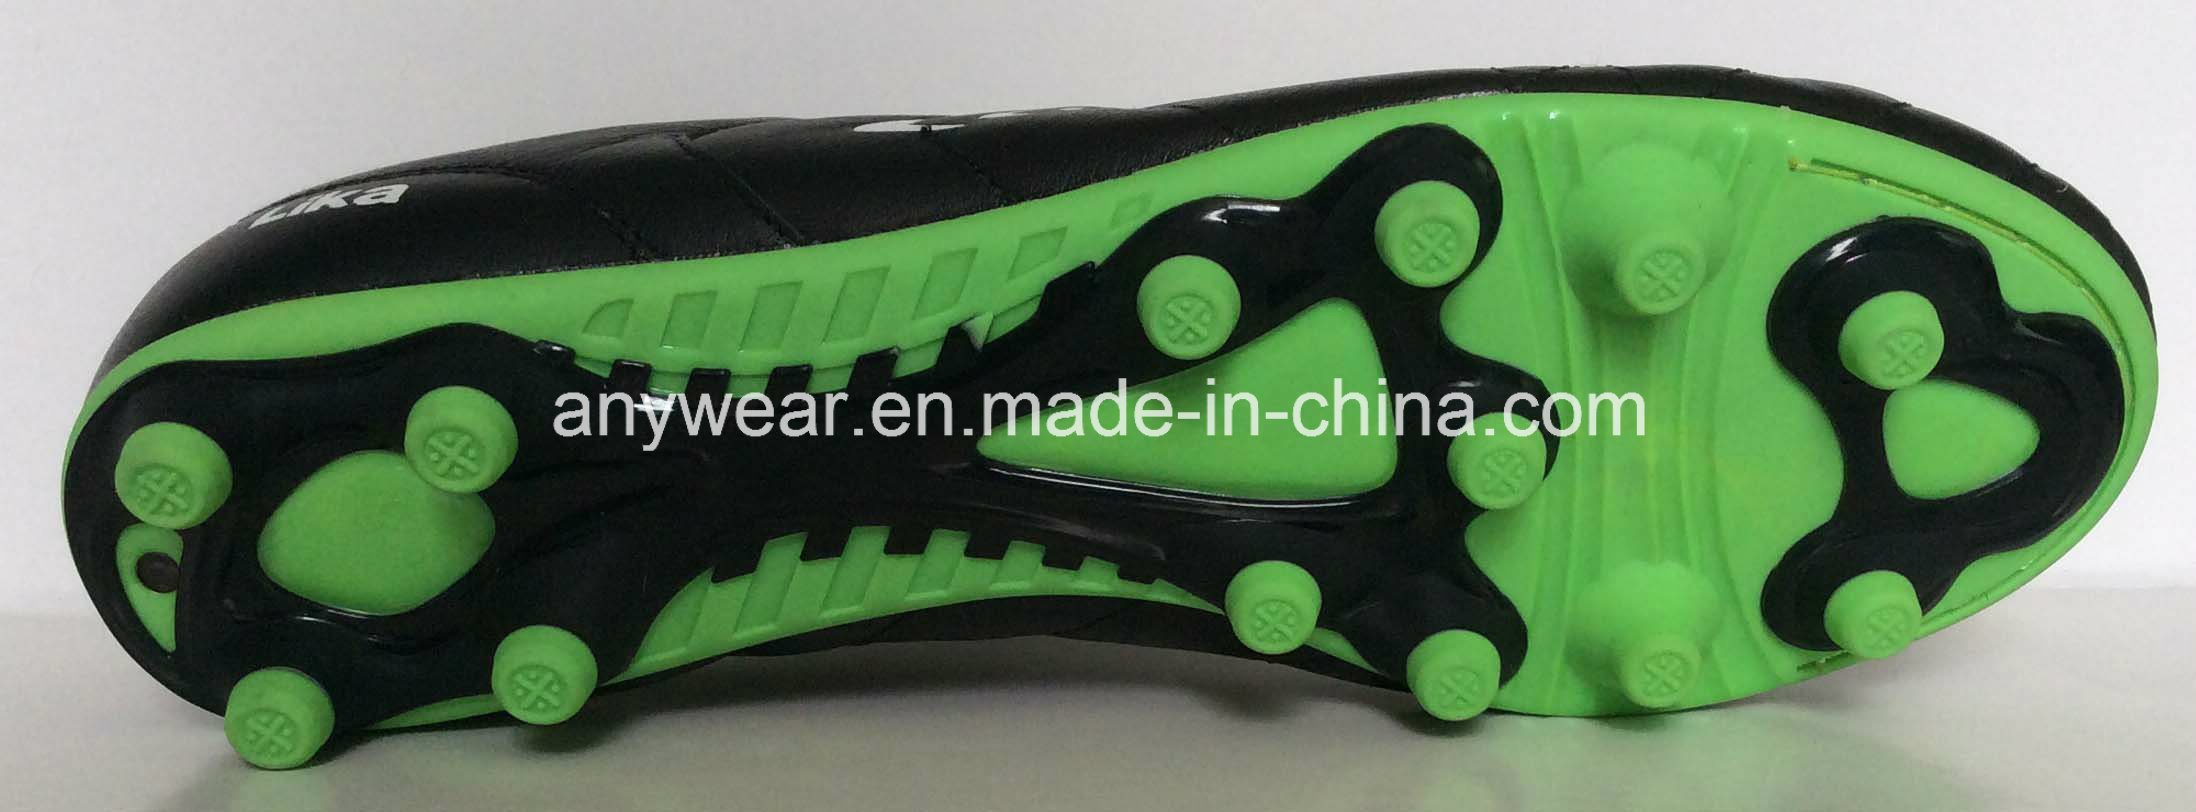 Kangaroo Leather Soccer Football Boots for Men′s Shoes (815-6513)